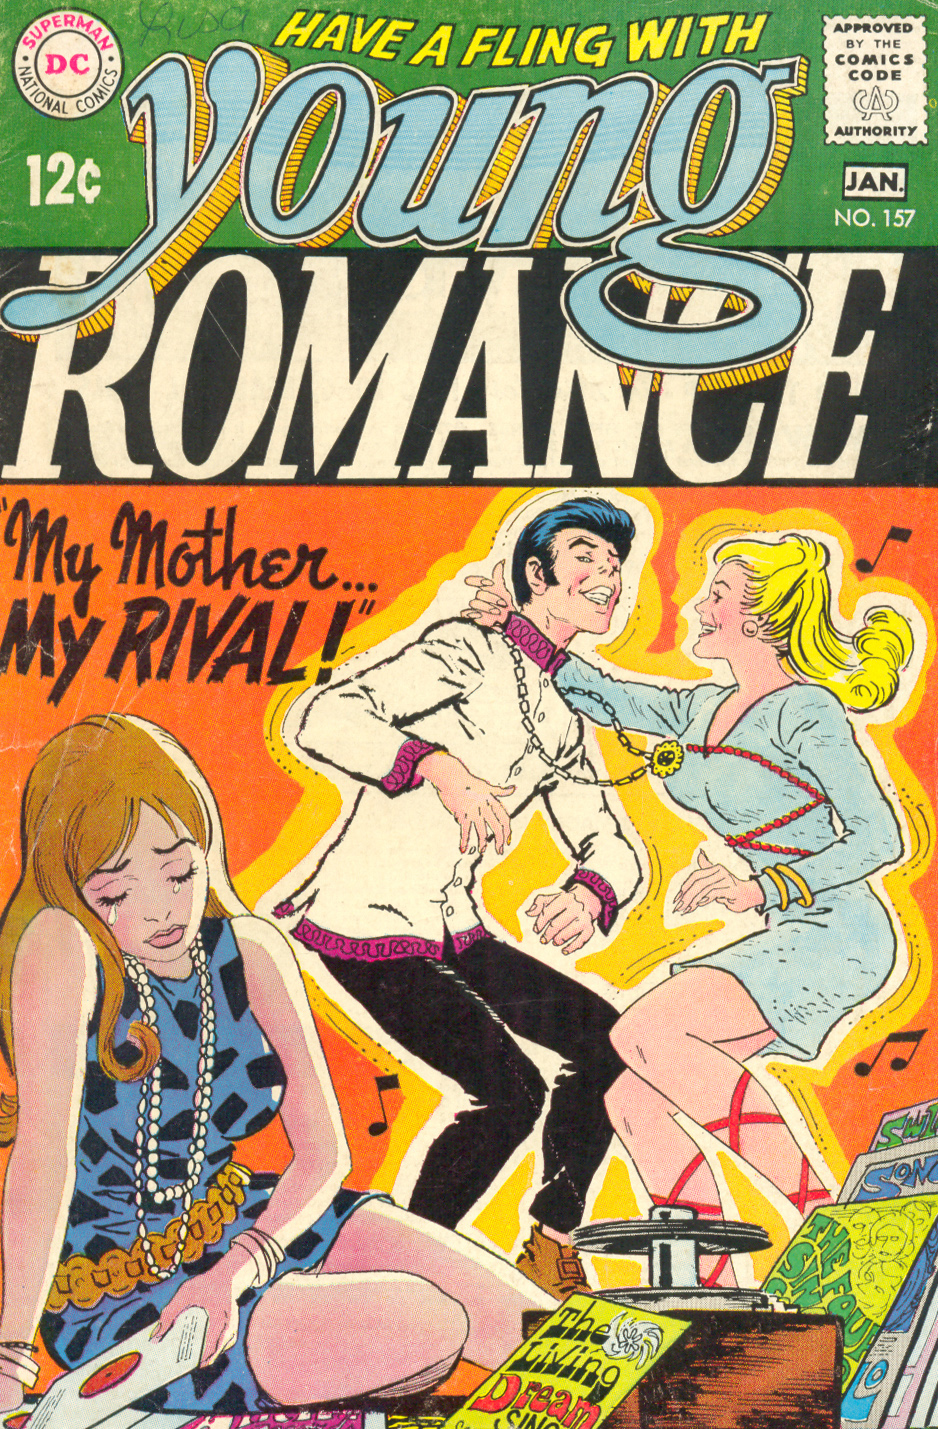 """My Mother... My Rival!"" from Young Romance #157 (December 1968/January 1969)"